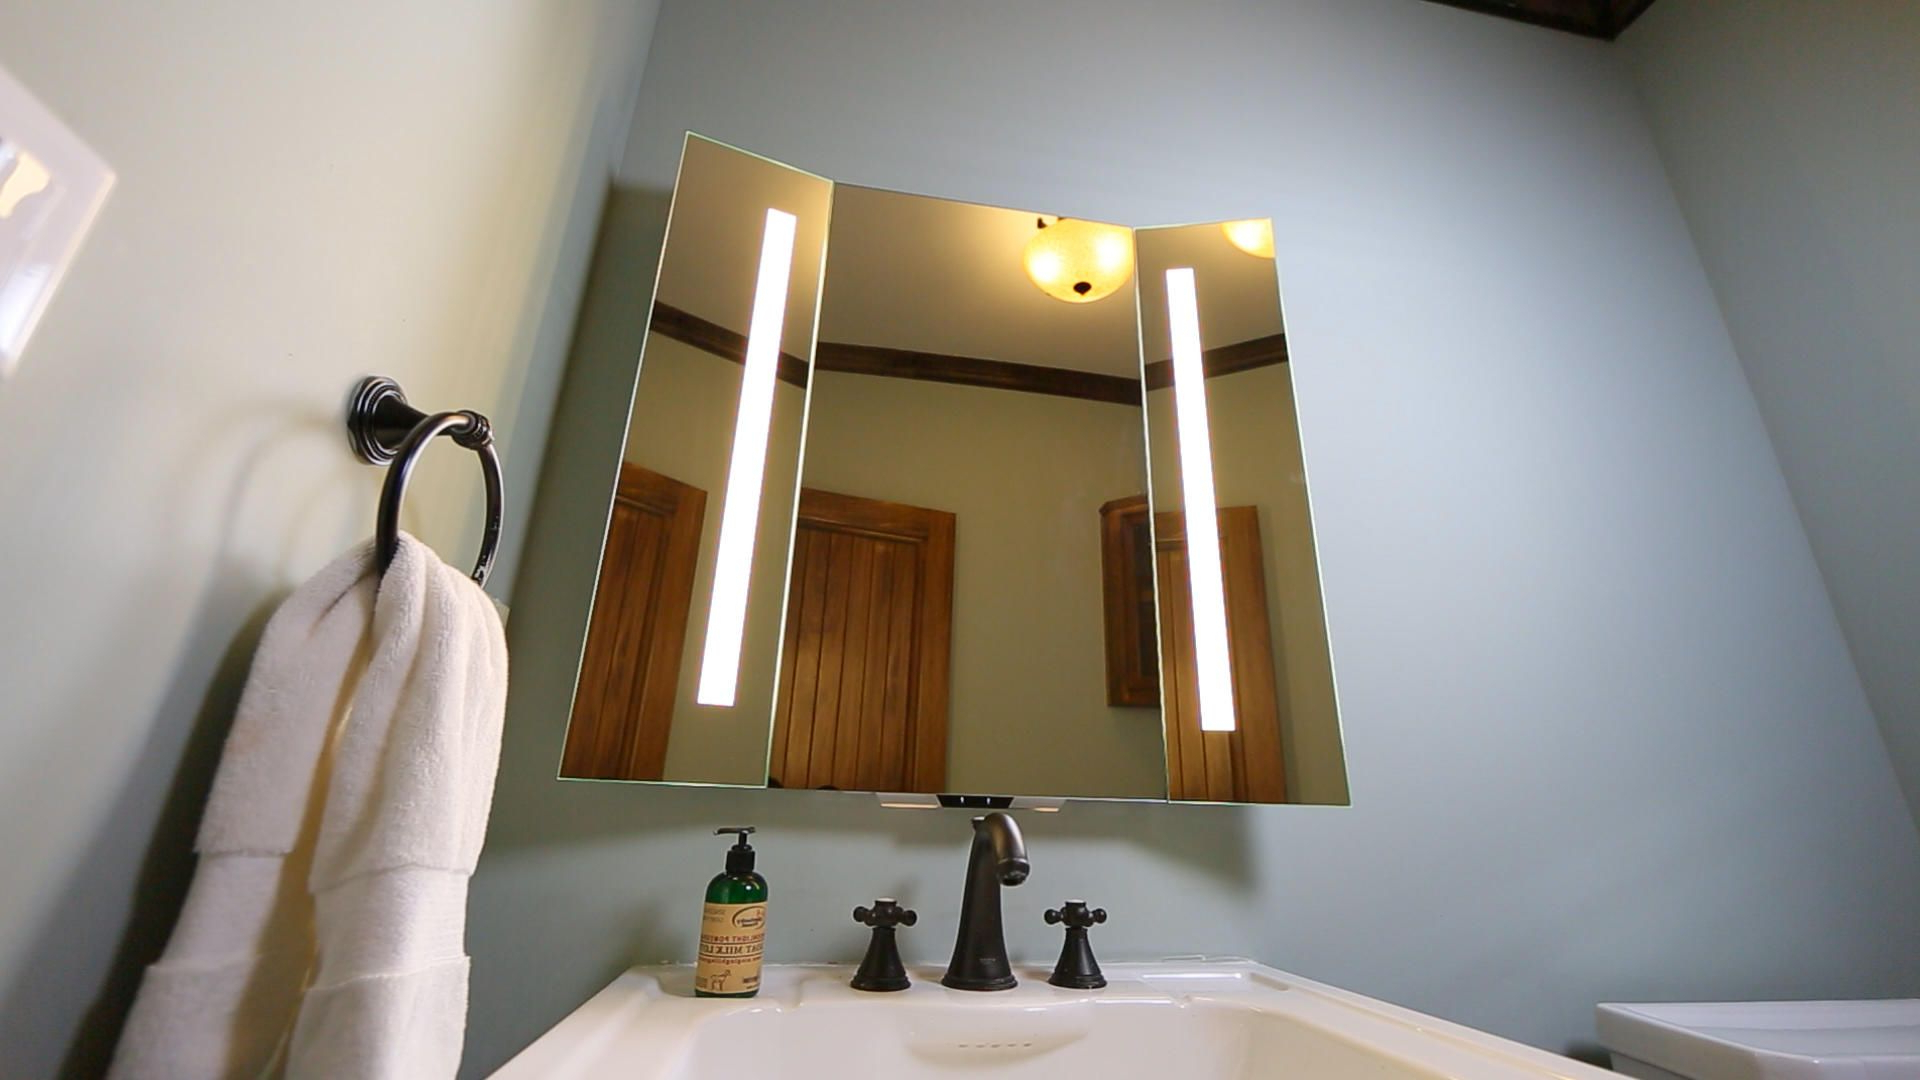 Most Recently Released Tri Fold Bathroom Wall Mirrors Pertaining To Kohler Put Alexa In Its Newest Bathroom Mirror (View 6 of 20)